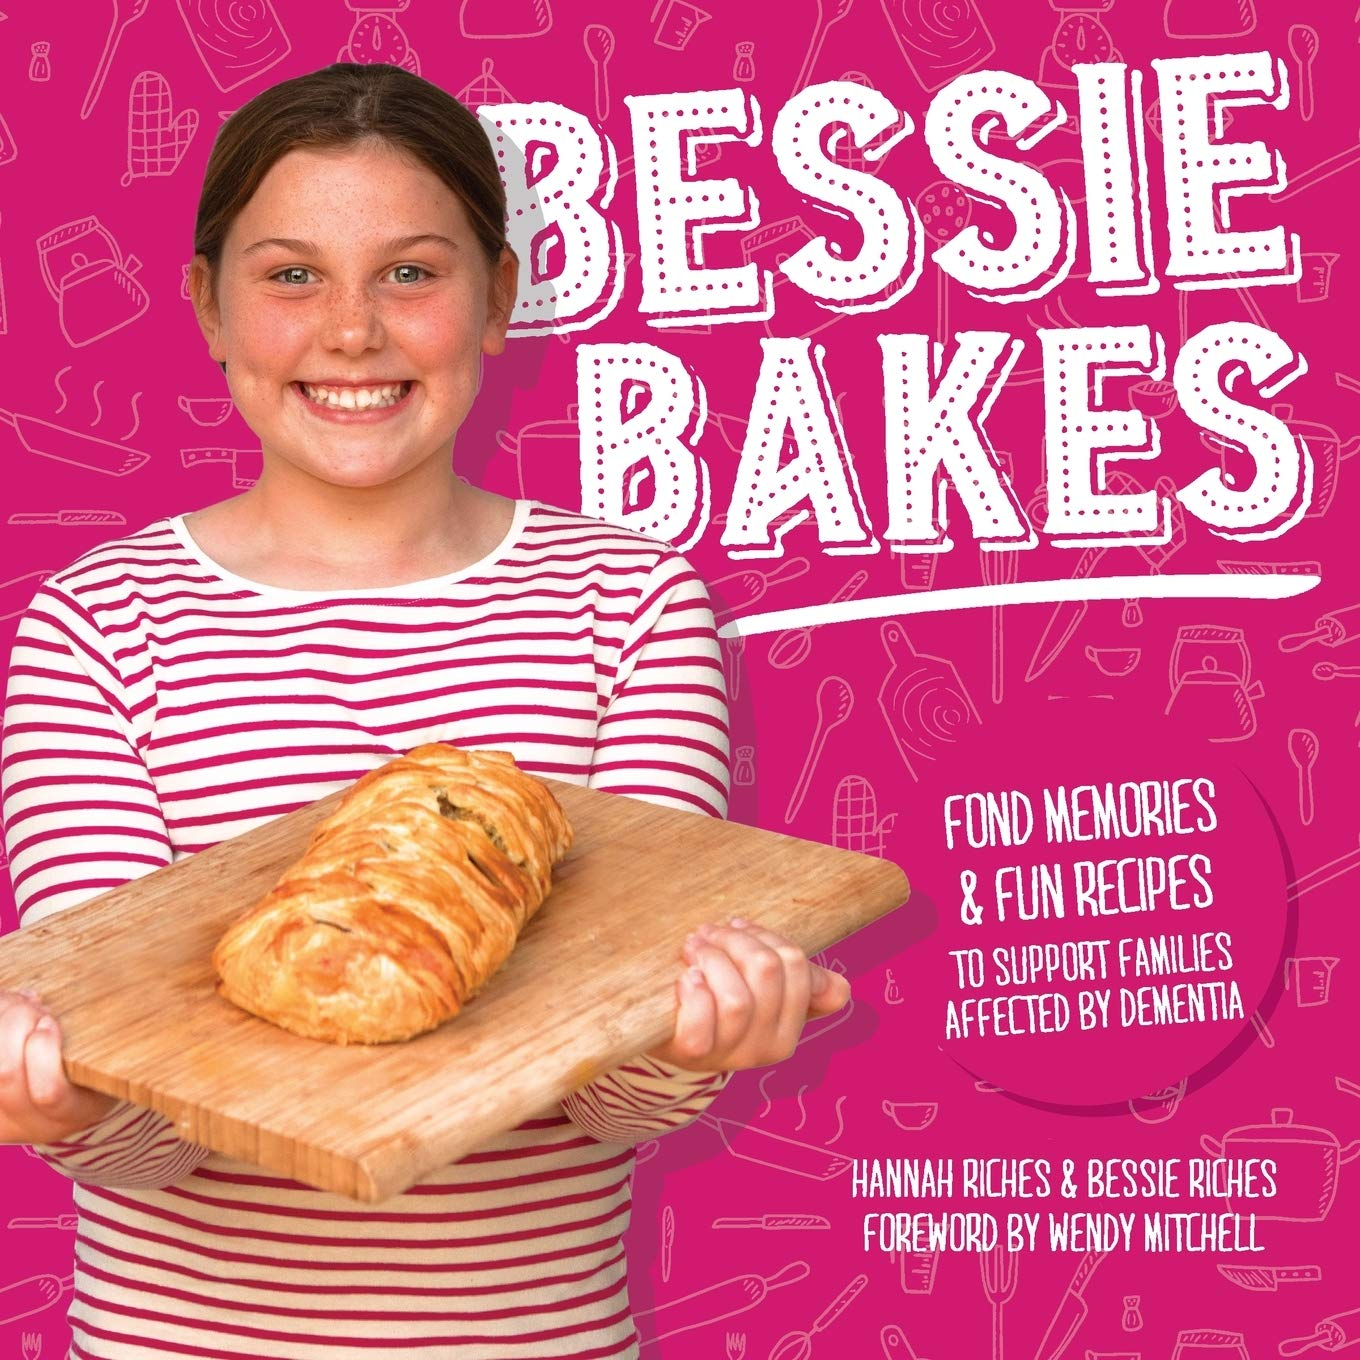 Bessie Bakes: Fond memories and fun recipes to support families affected by dementia